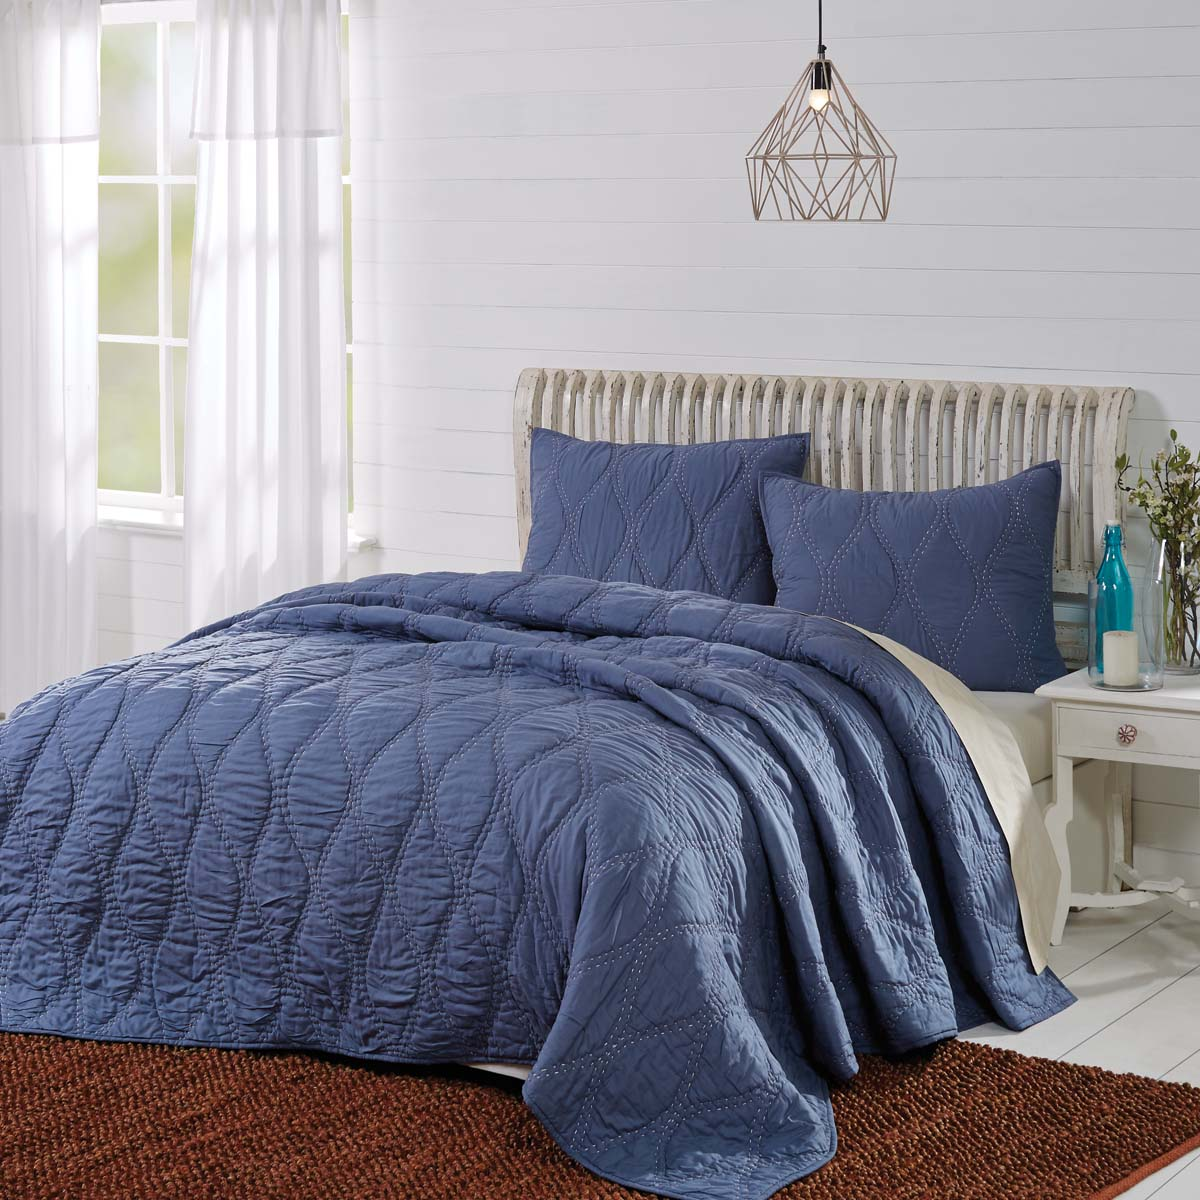 Vhc Brands Farmhouse Bedding Pillows Cotton Batting Harbour Navy Twin Quilt 68wx86l